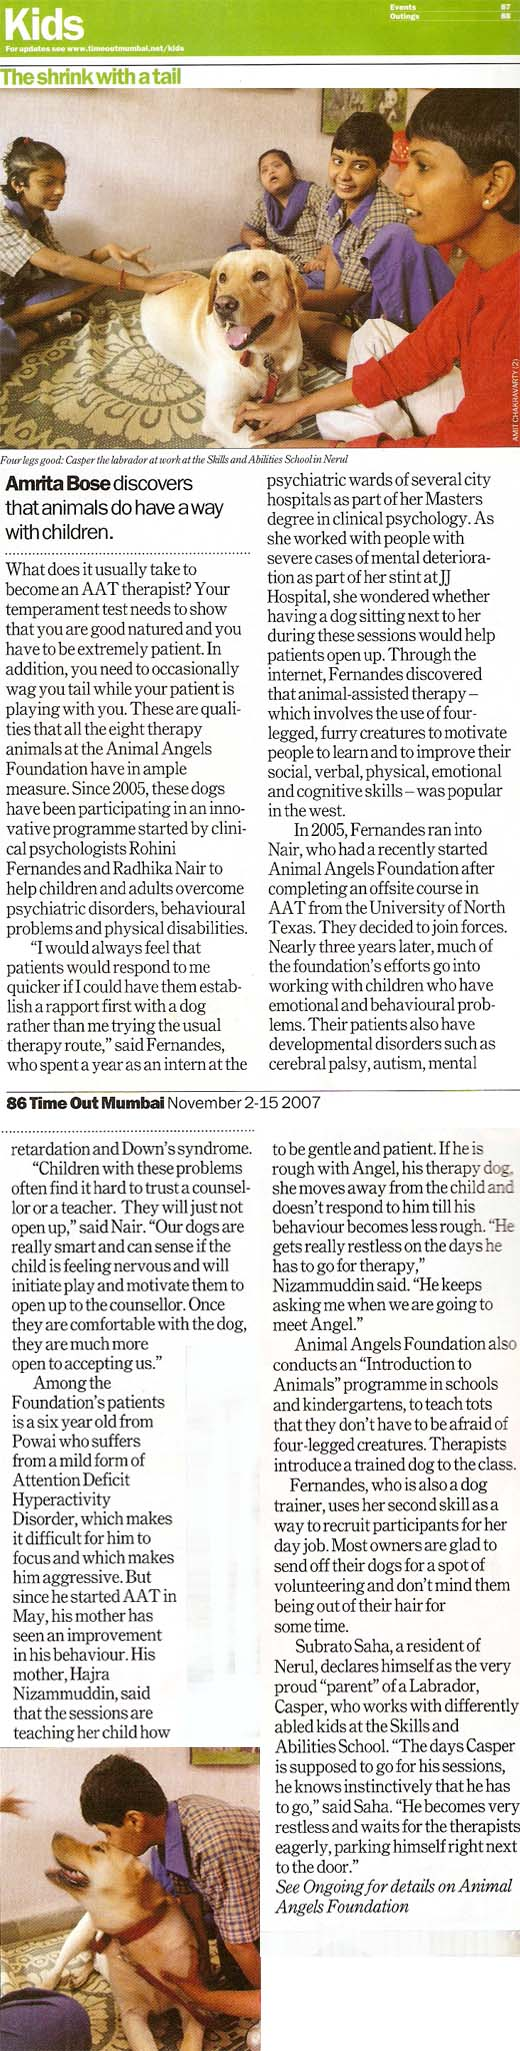 TimeOut article on Animal Angels Foundation - November 2-15 issue, 2007